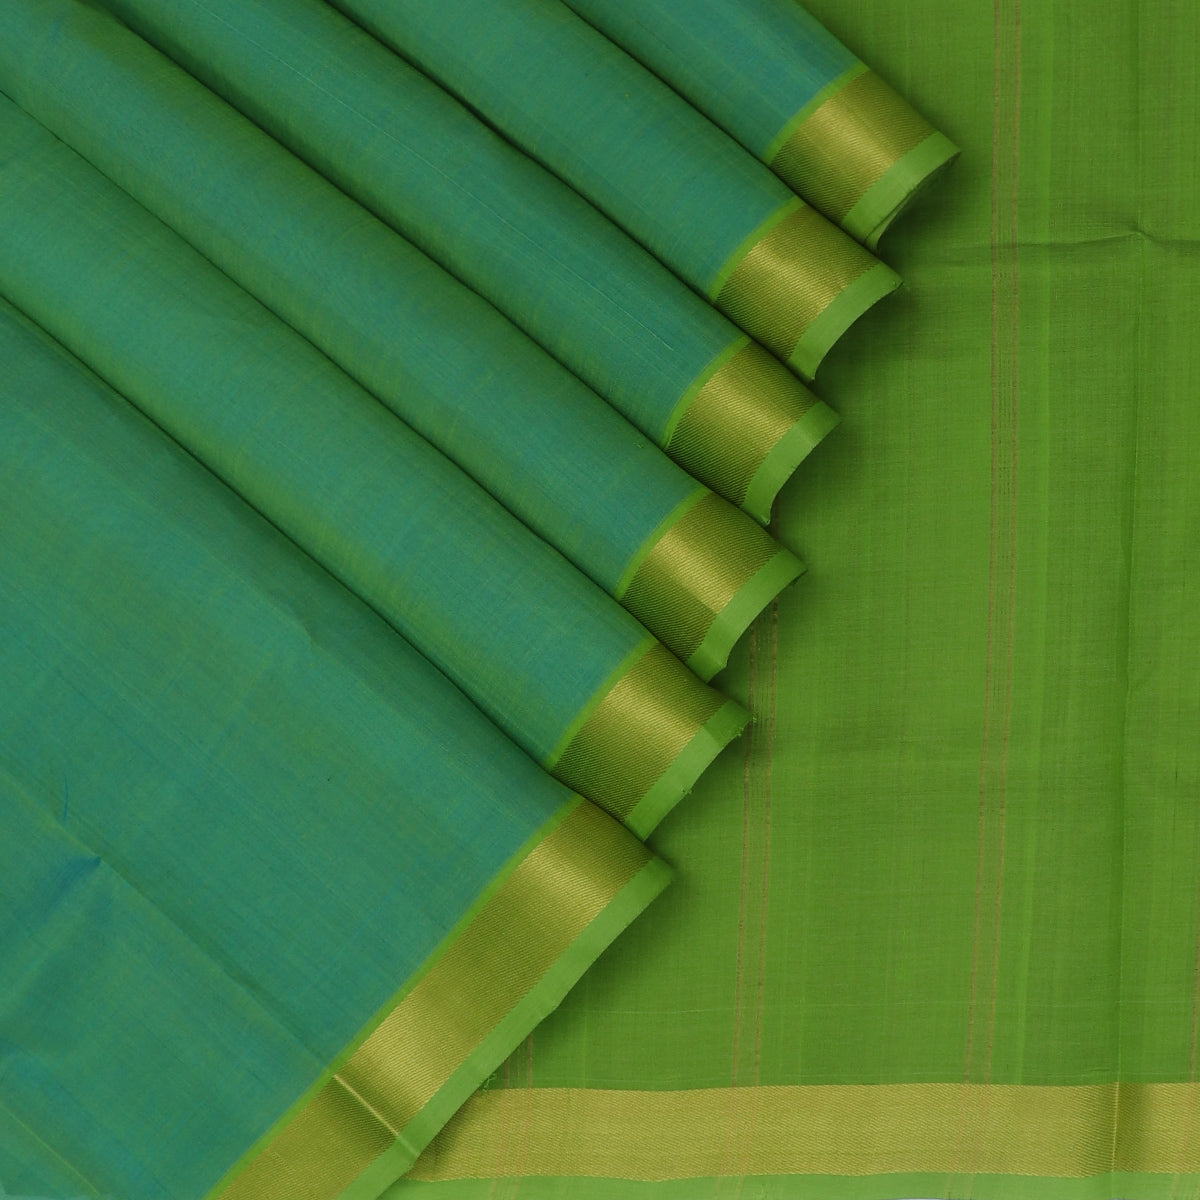 Silk Cotton Saree-Dual shade of Sea blue and Light Green with Zari border